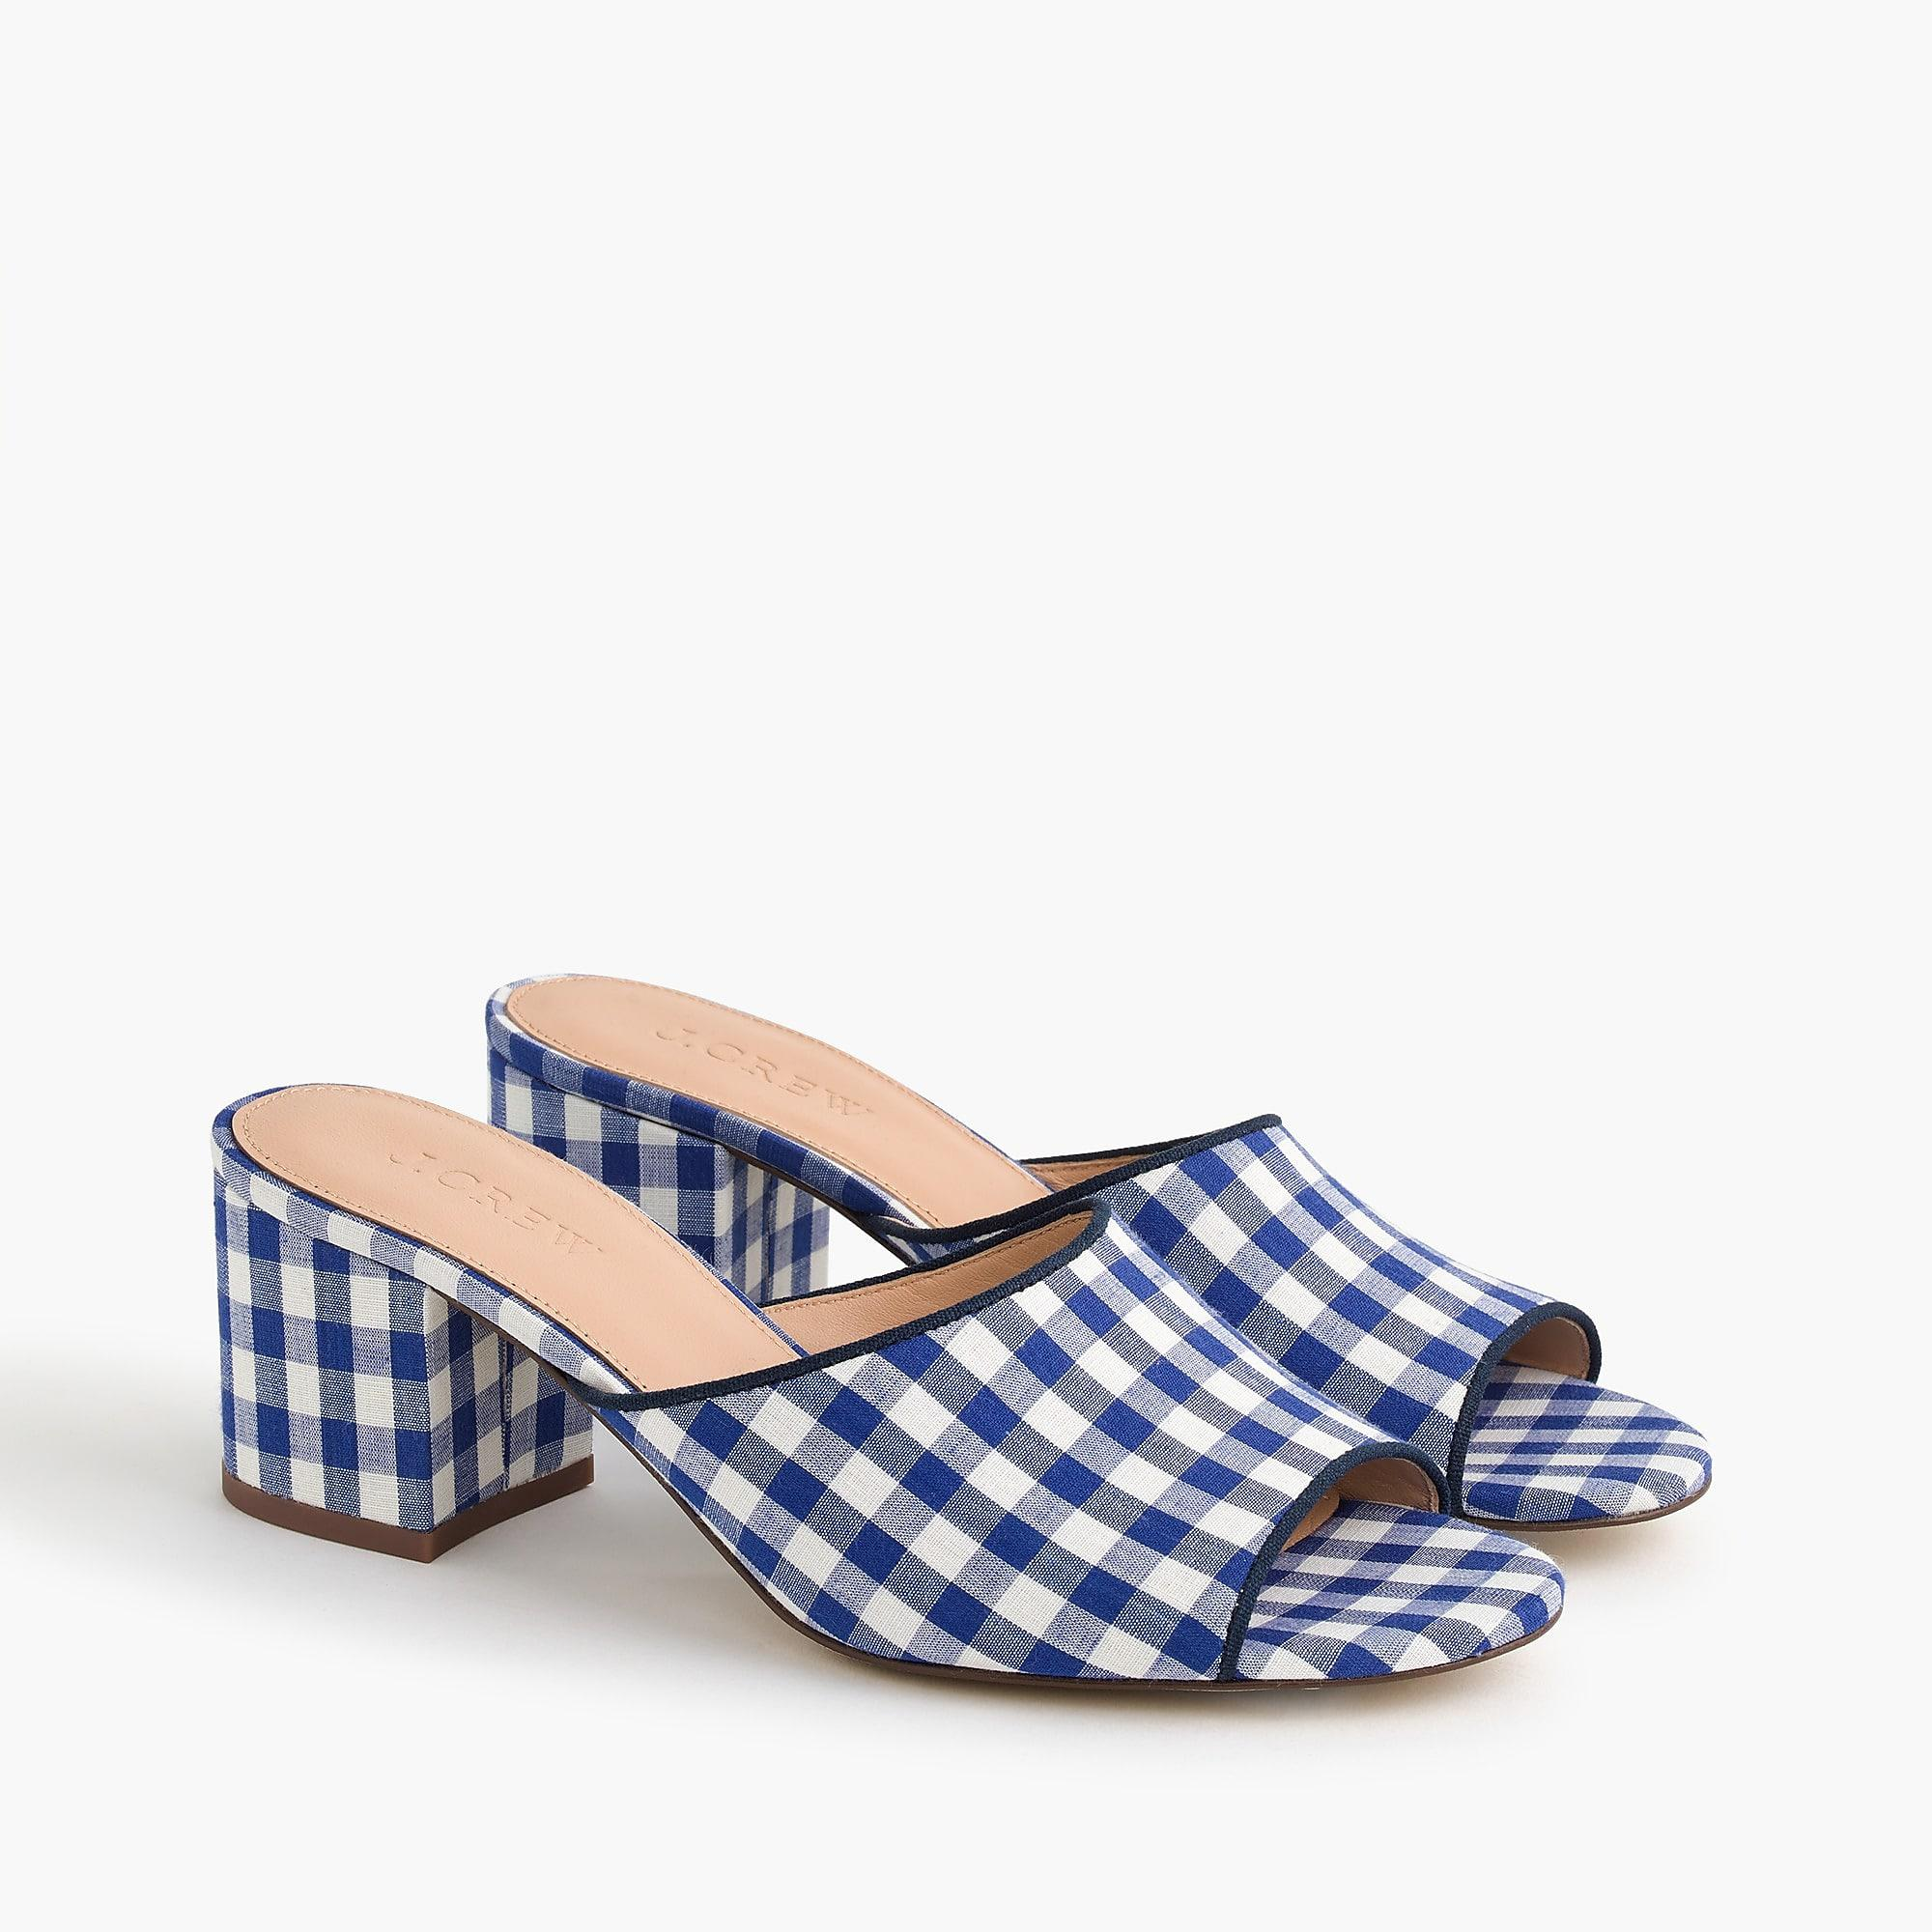 J.CREWALL-DAY MULE IN GINGHAM - Heeled mules - blue/white xmiRvAYdTG